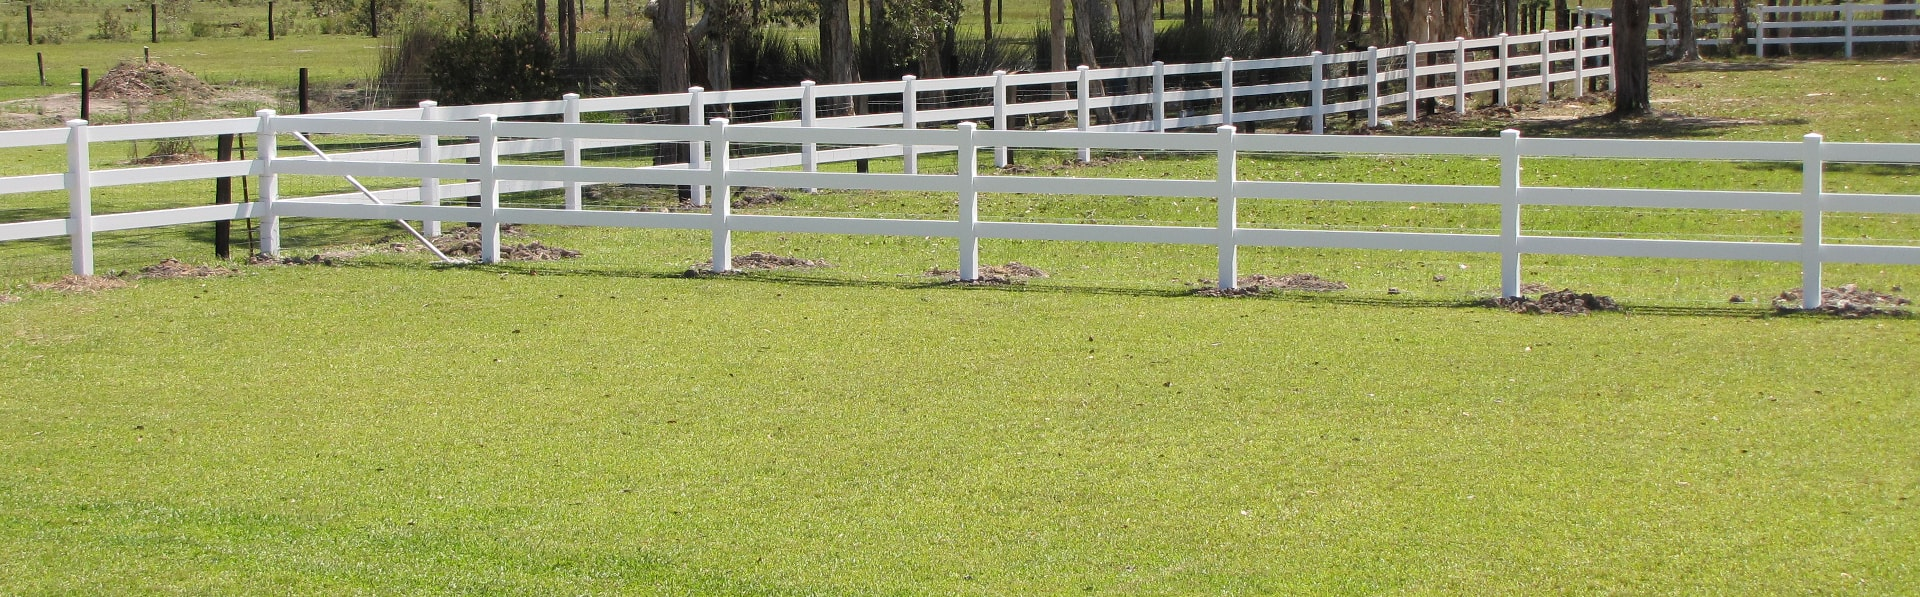 Picture of: Post And Rail Fencing Big Country Pvc Fencing Australian Owned